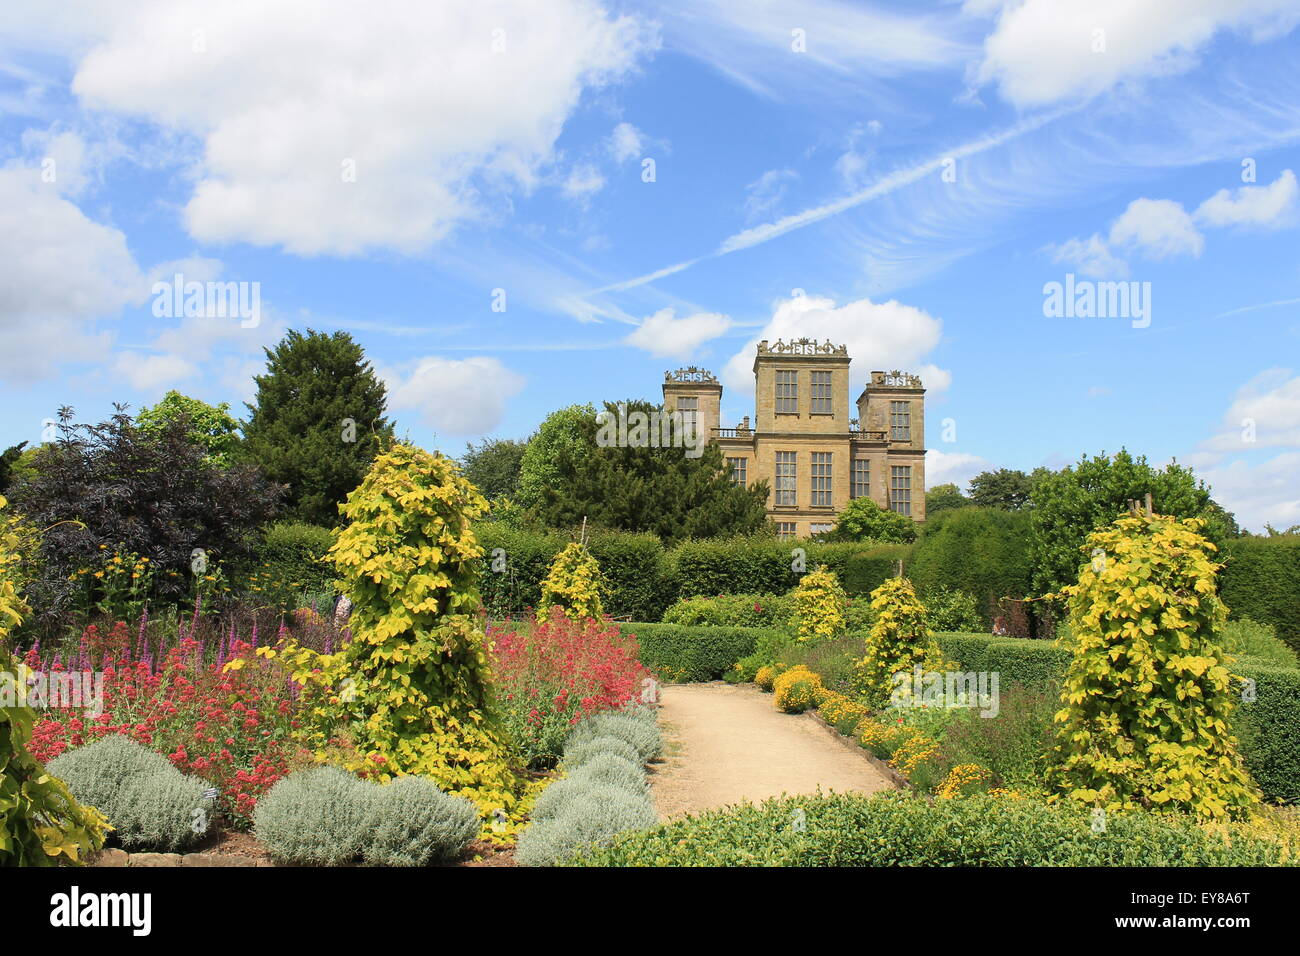 Hardwick Hall, south elevation, Derbyshire, England, UK: an Elizabethan manor house and garden - Stock Image